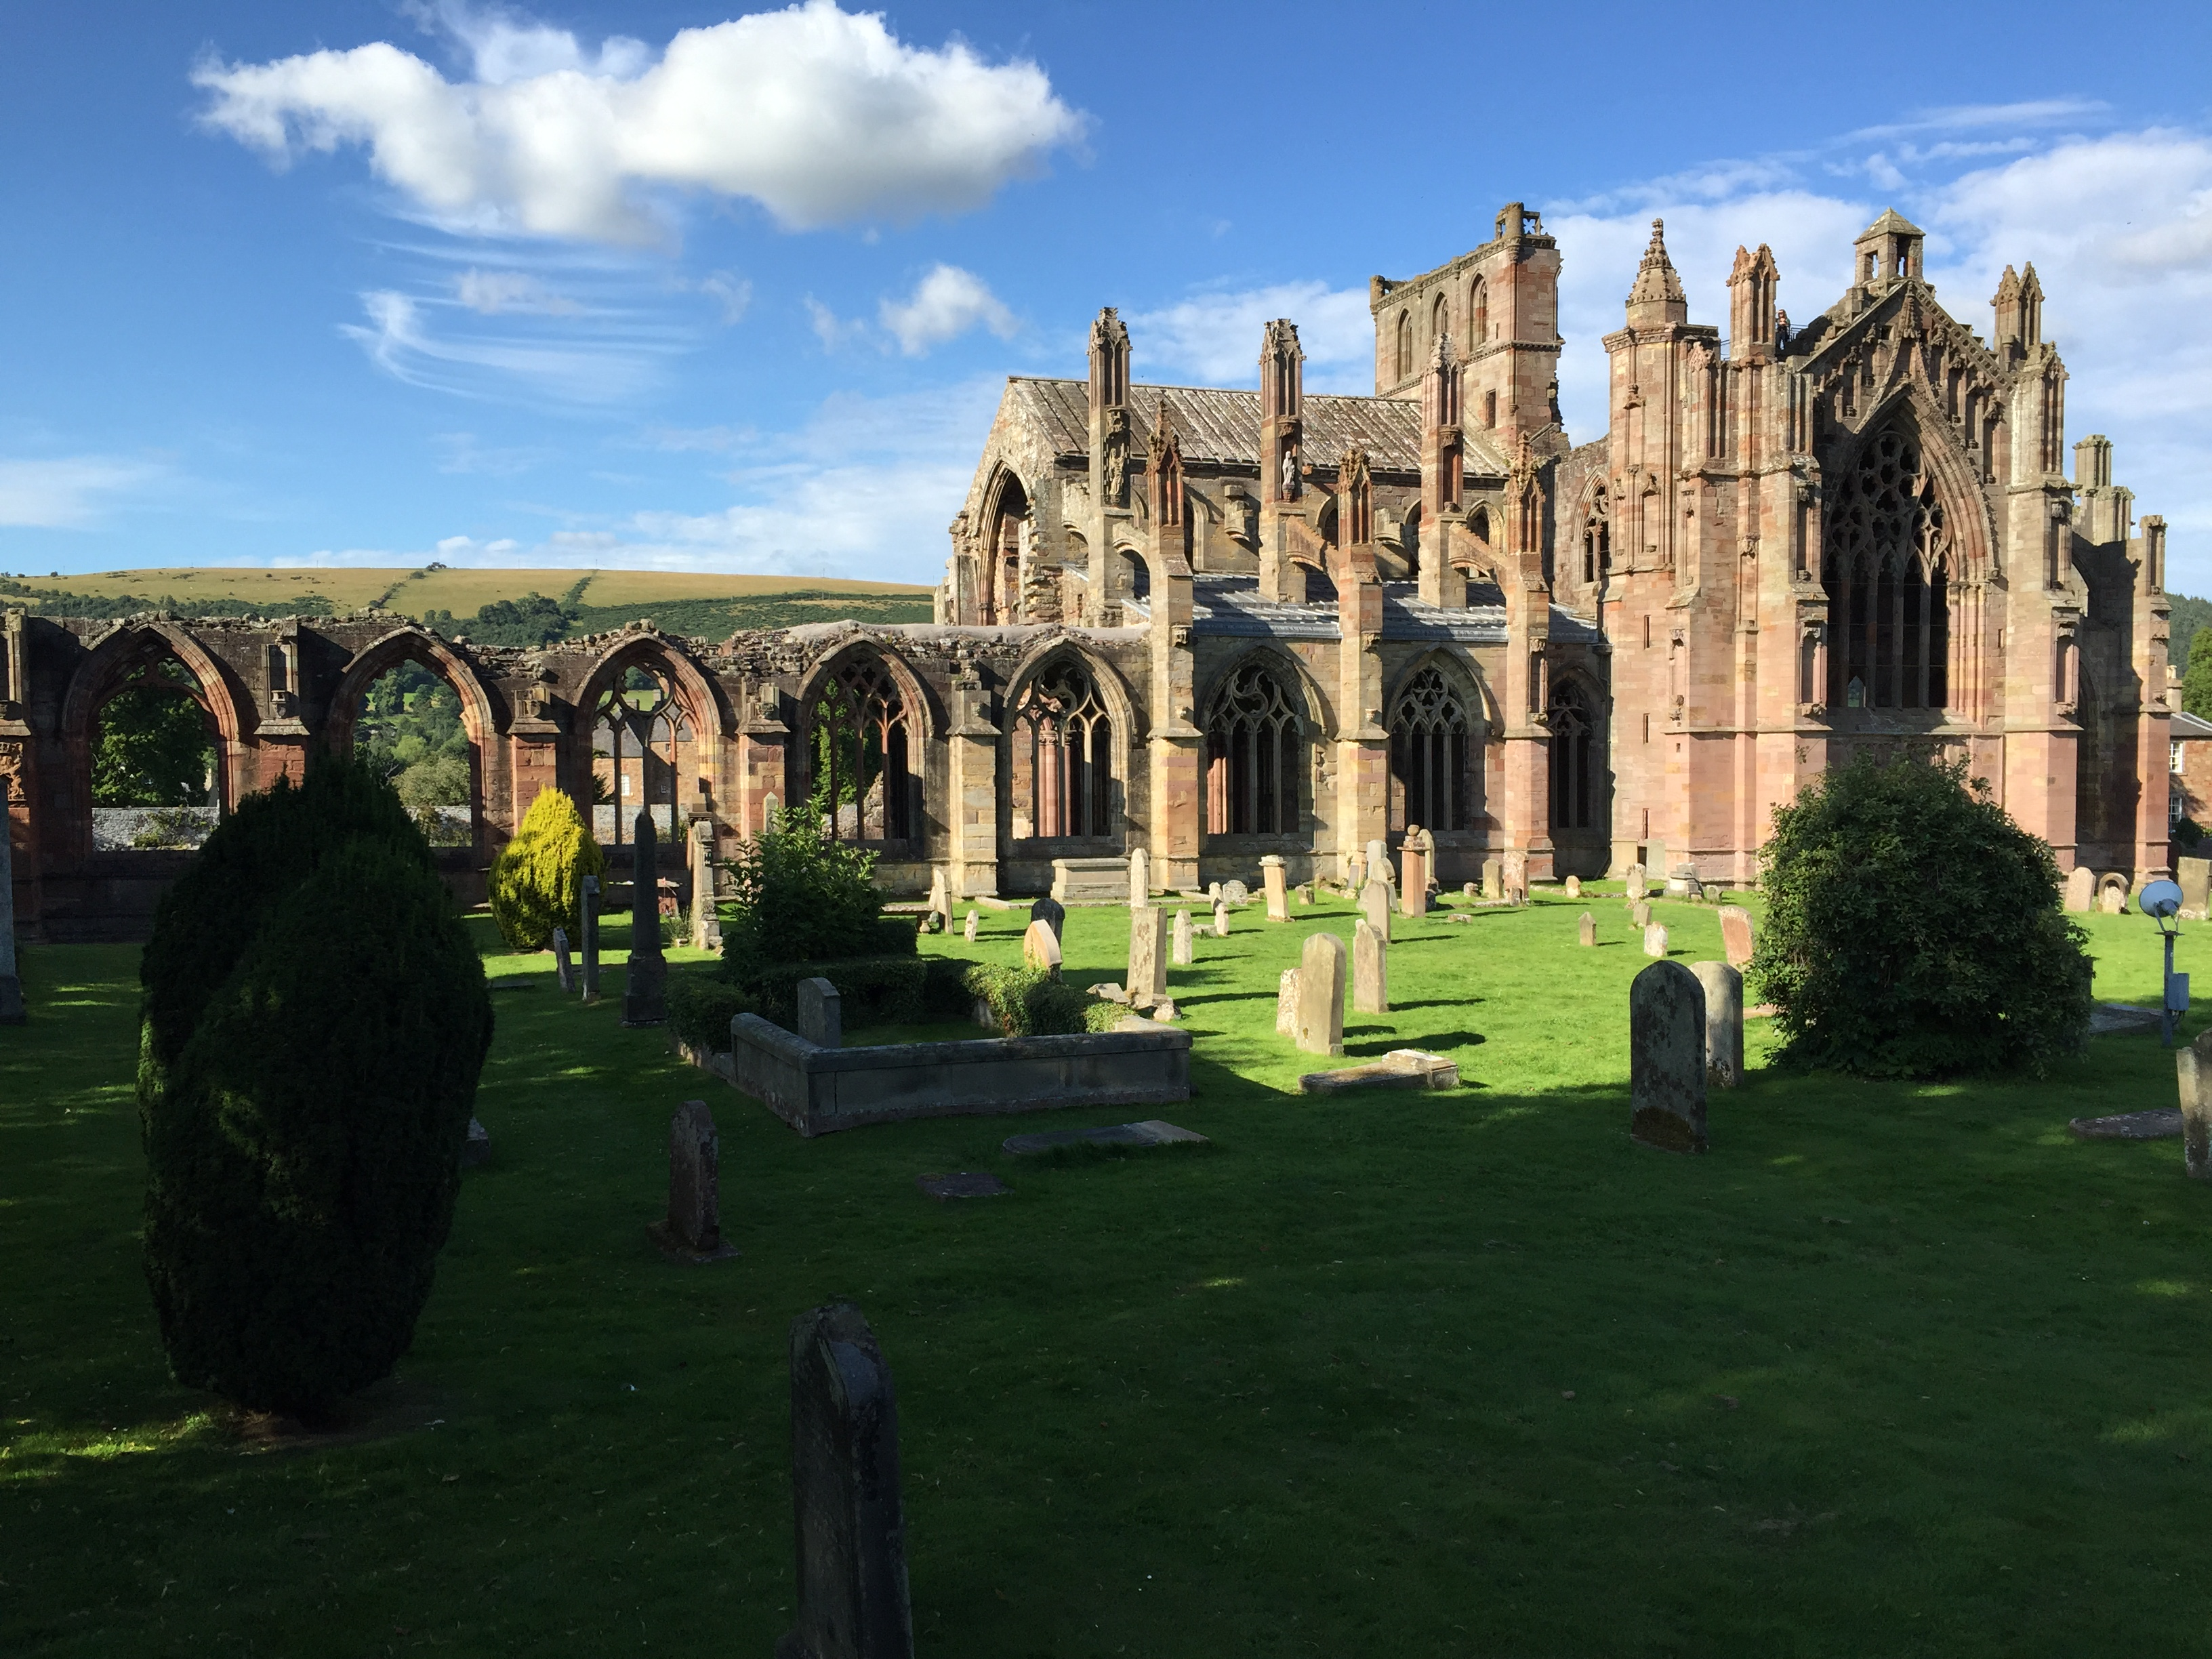 At the start of the route – Melrose Abbey